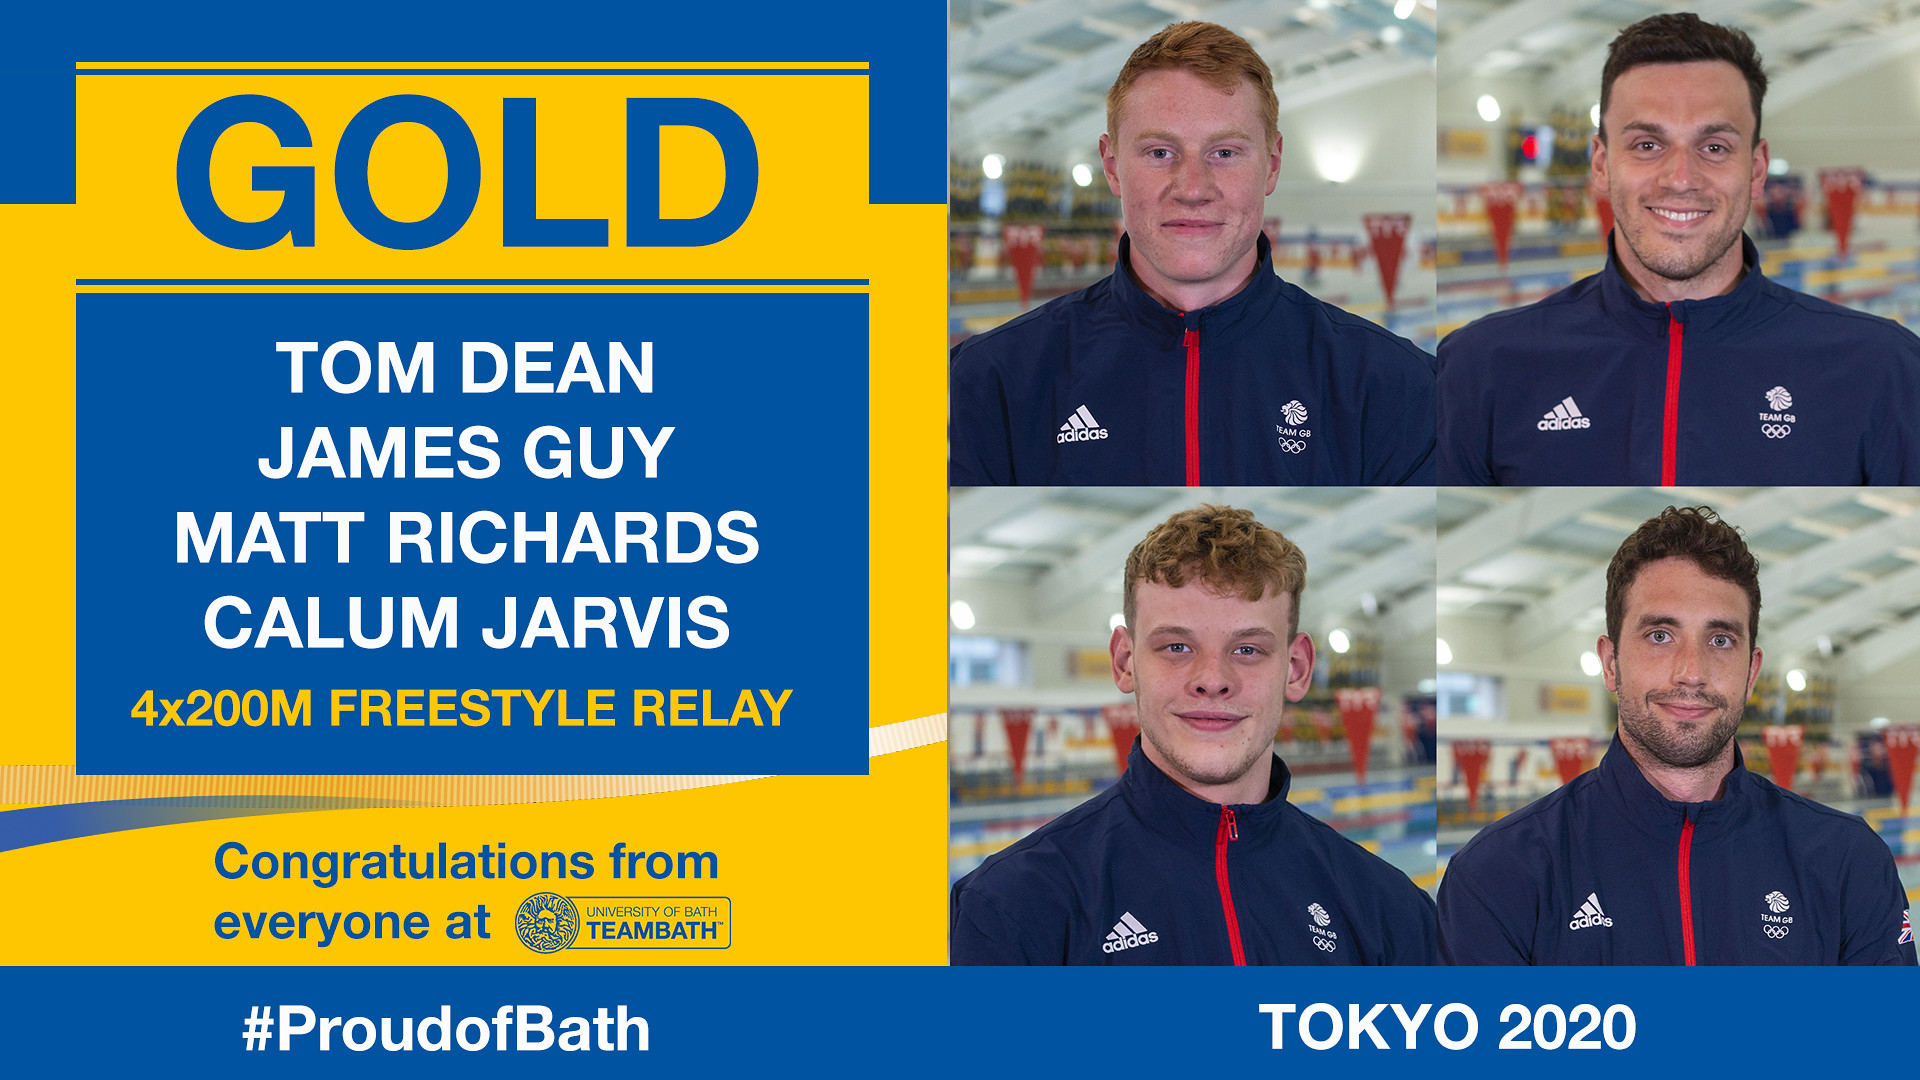 The gold medal-winning 4x200m freestyle relay swimmers